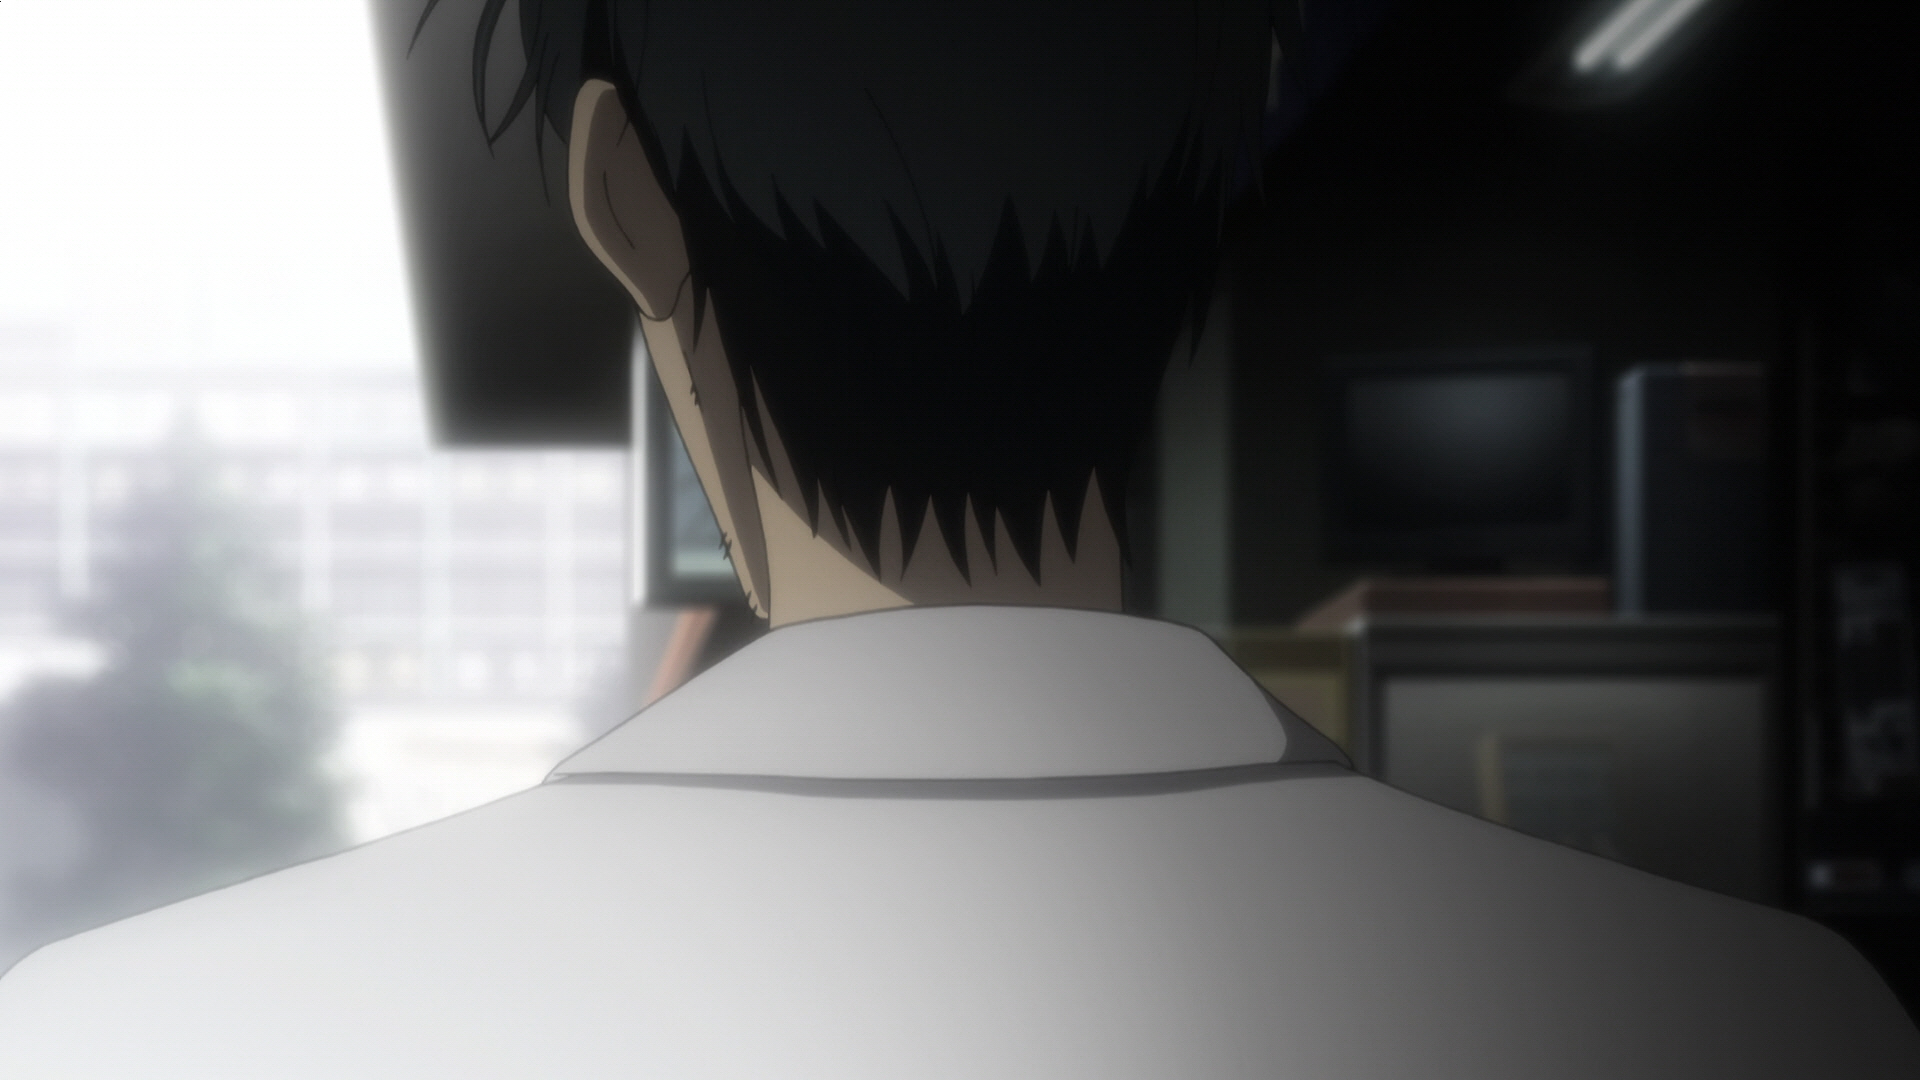 Steins Gate Episode 9 Chaos Theory Homeostasis II 12